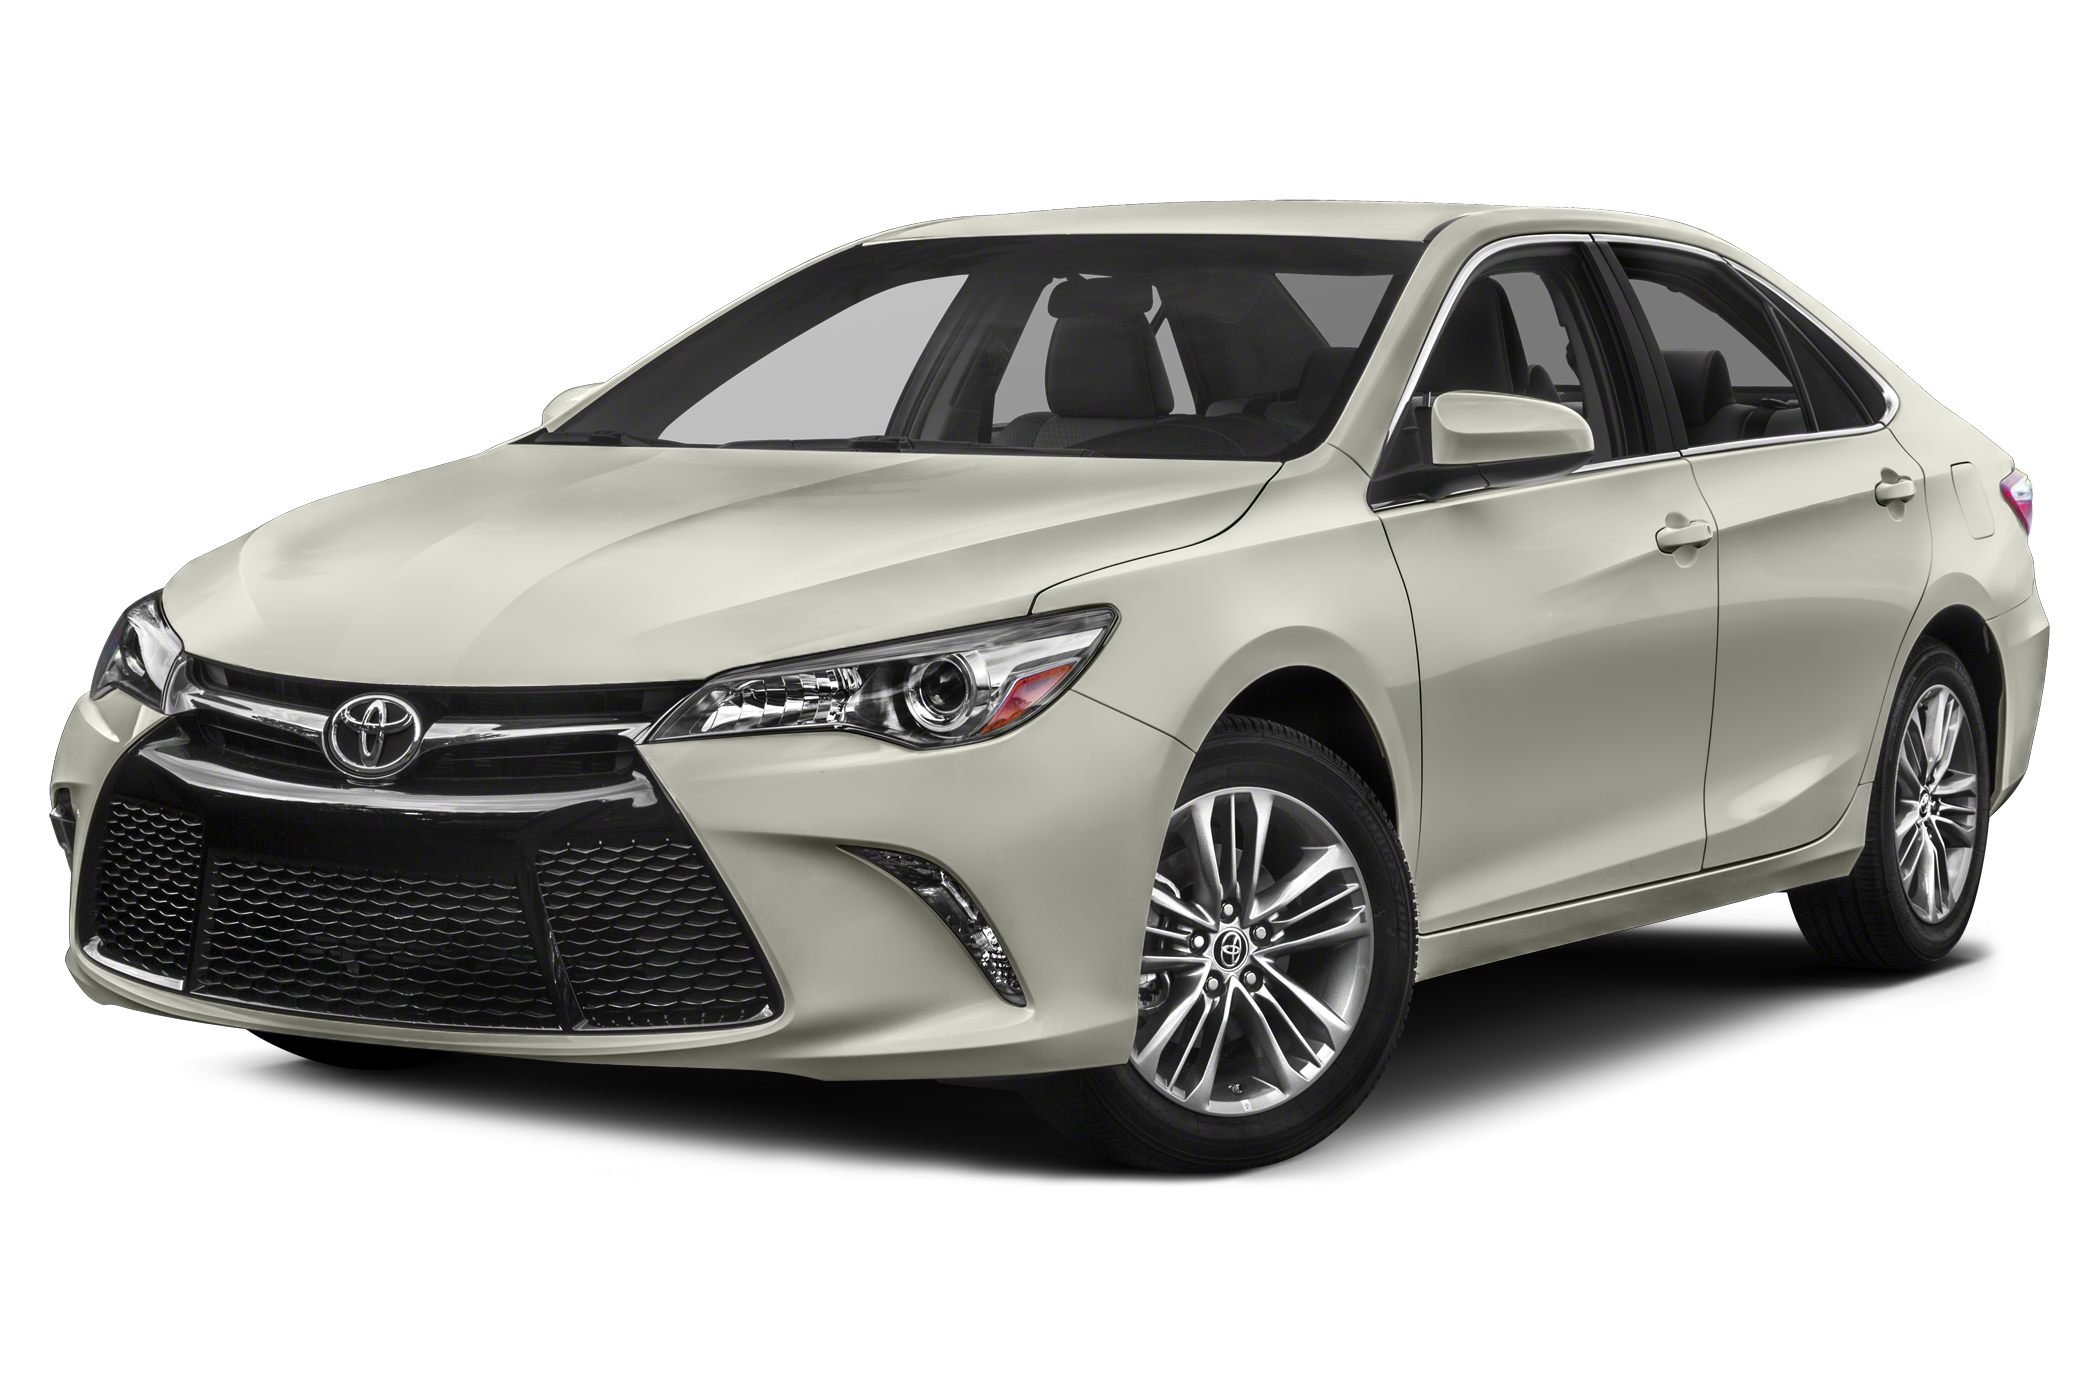 2015 Toyota Camry SE Sedan for sale in Dekalb for $25,805 with 5 miles.